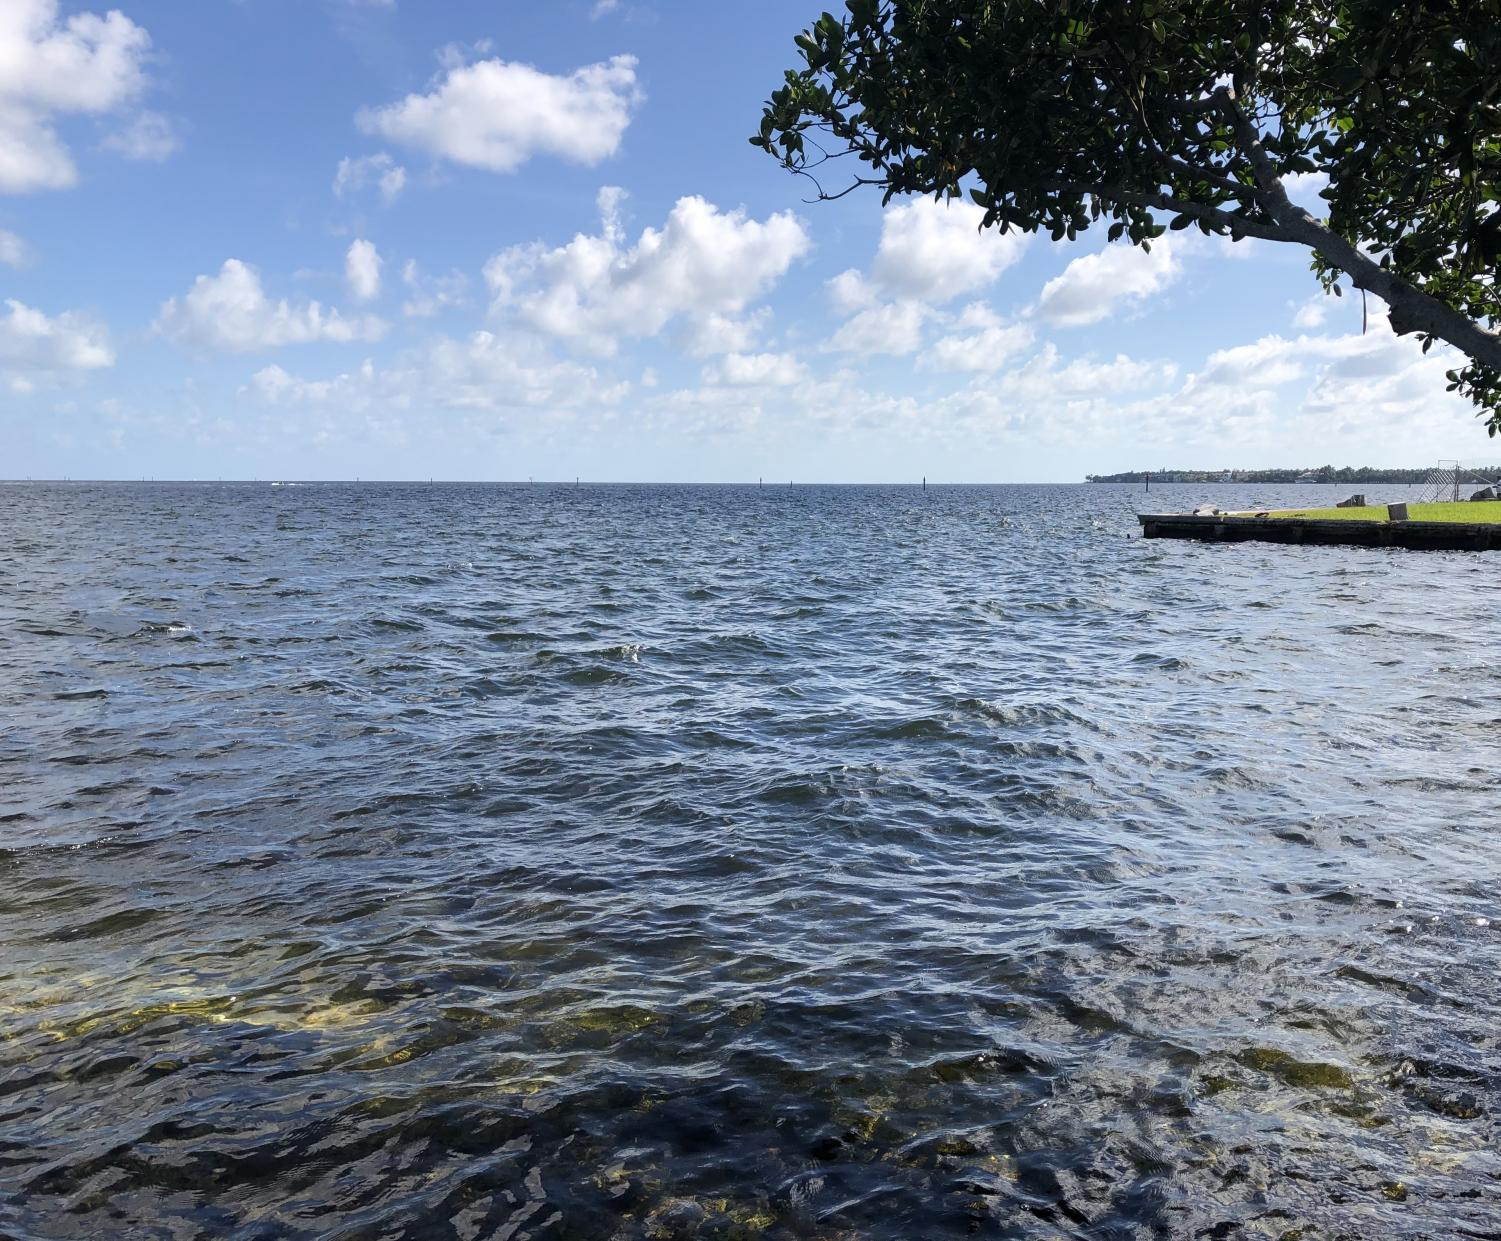 Though invisible when you look out on the bay, Biscayne Bay is a place of carnage beneath the surface.